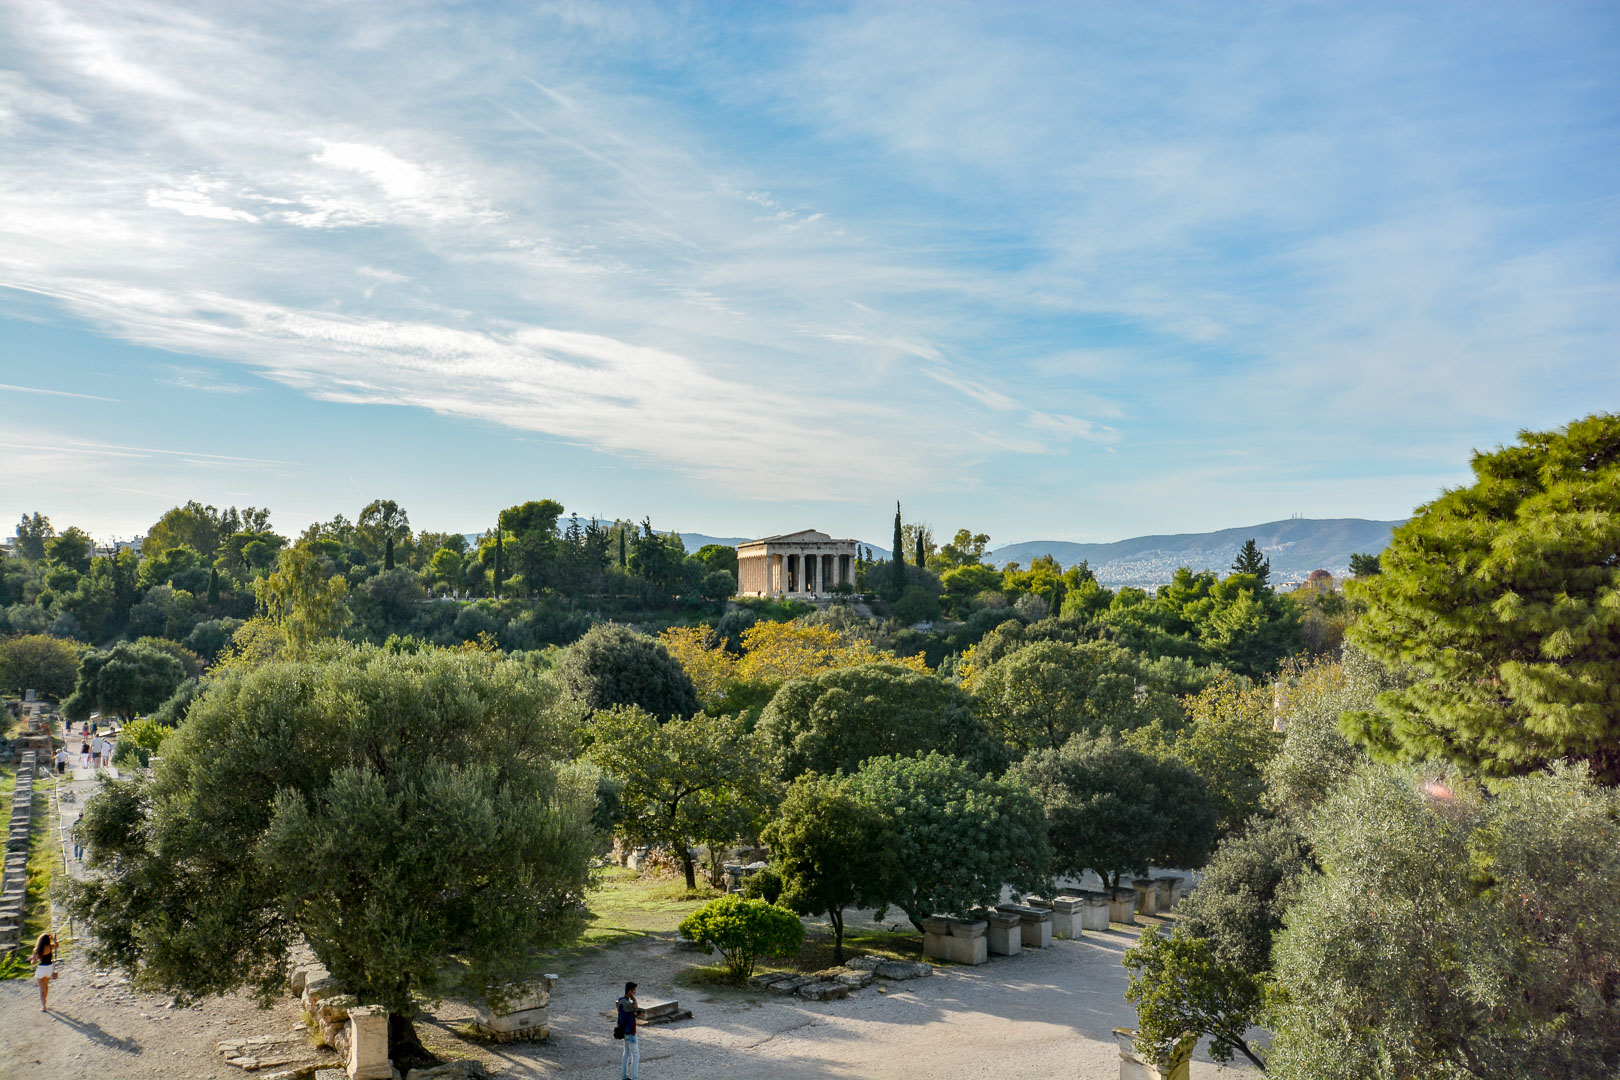 Temple of Hephaestus on the hill in the distance